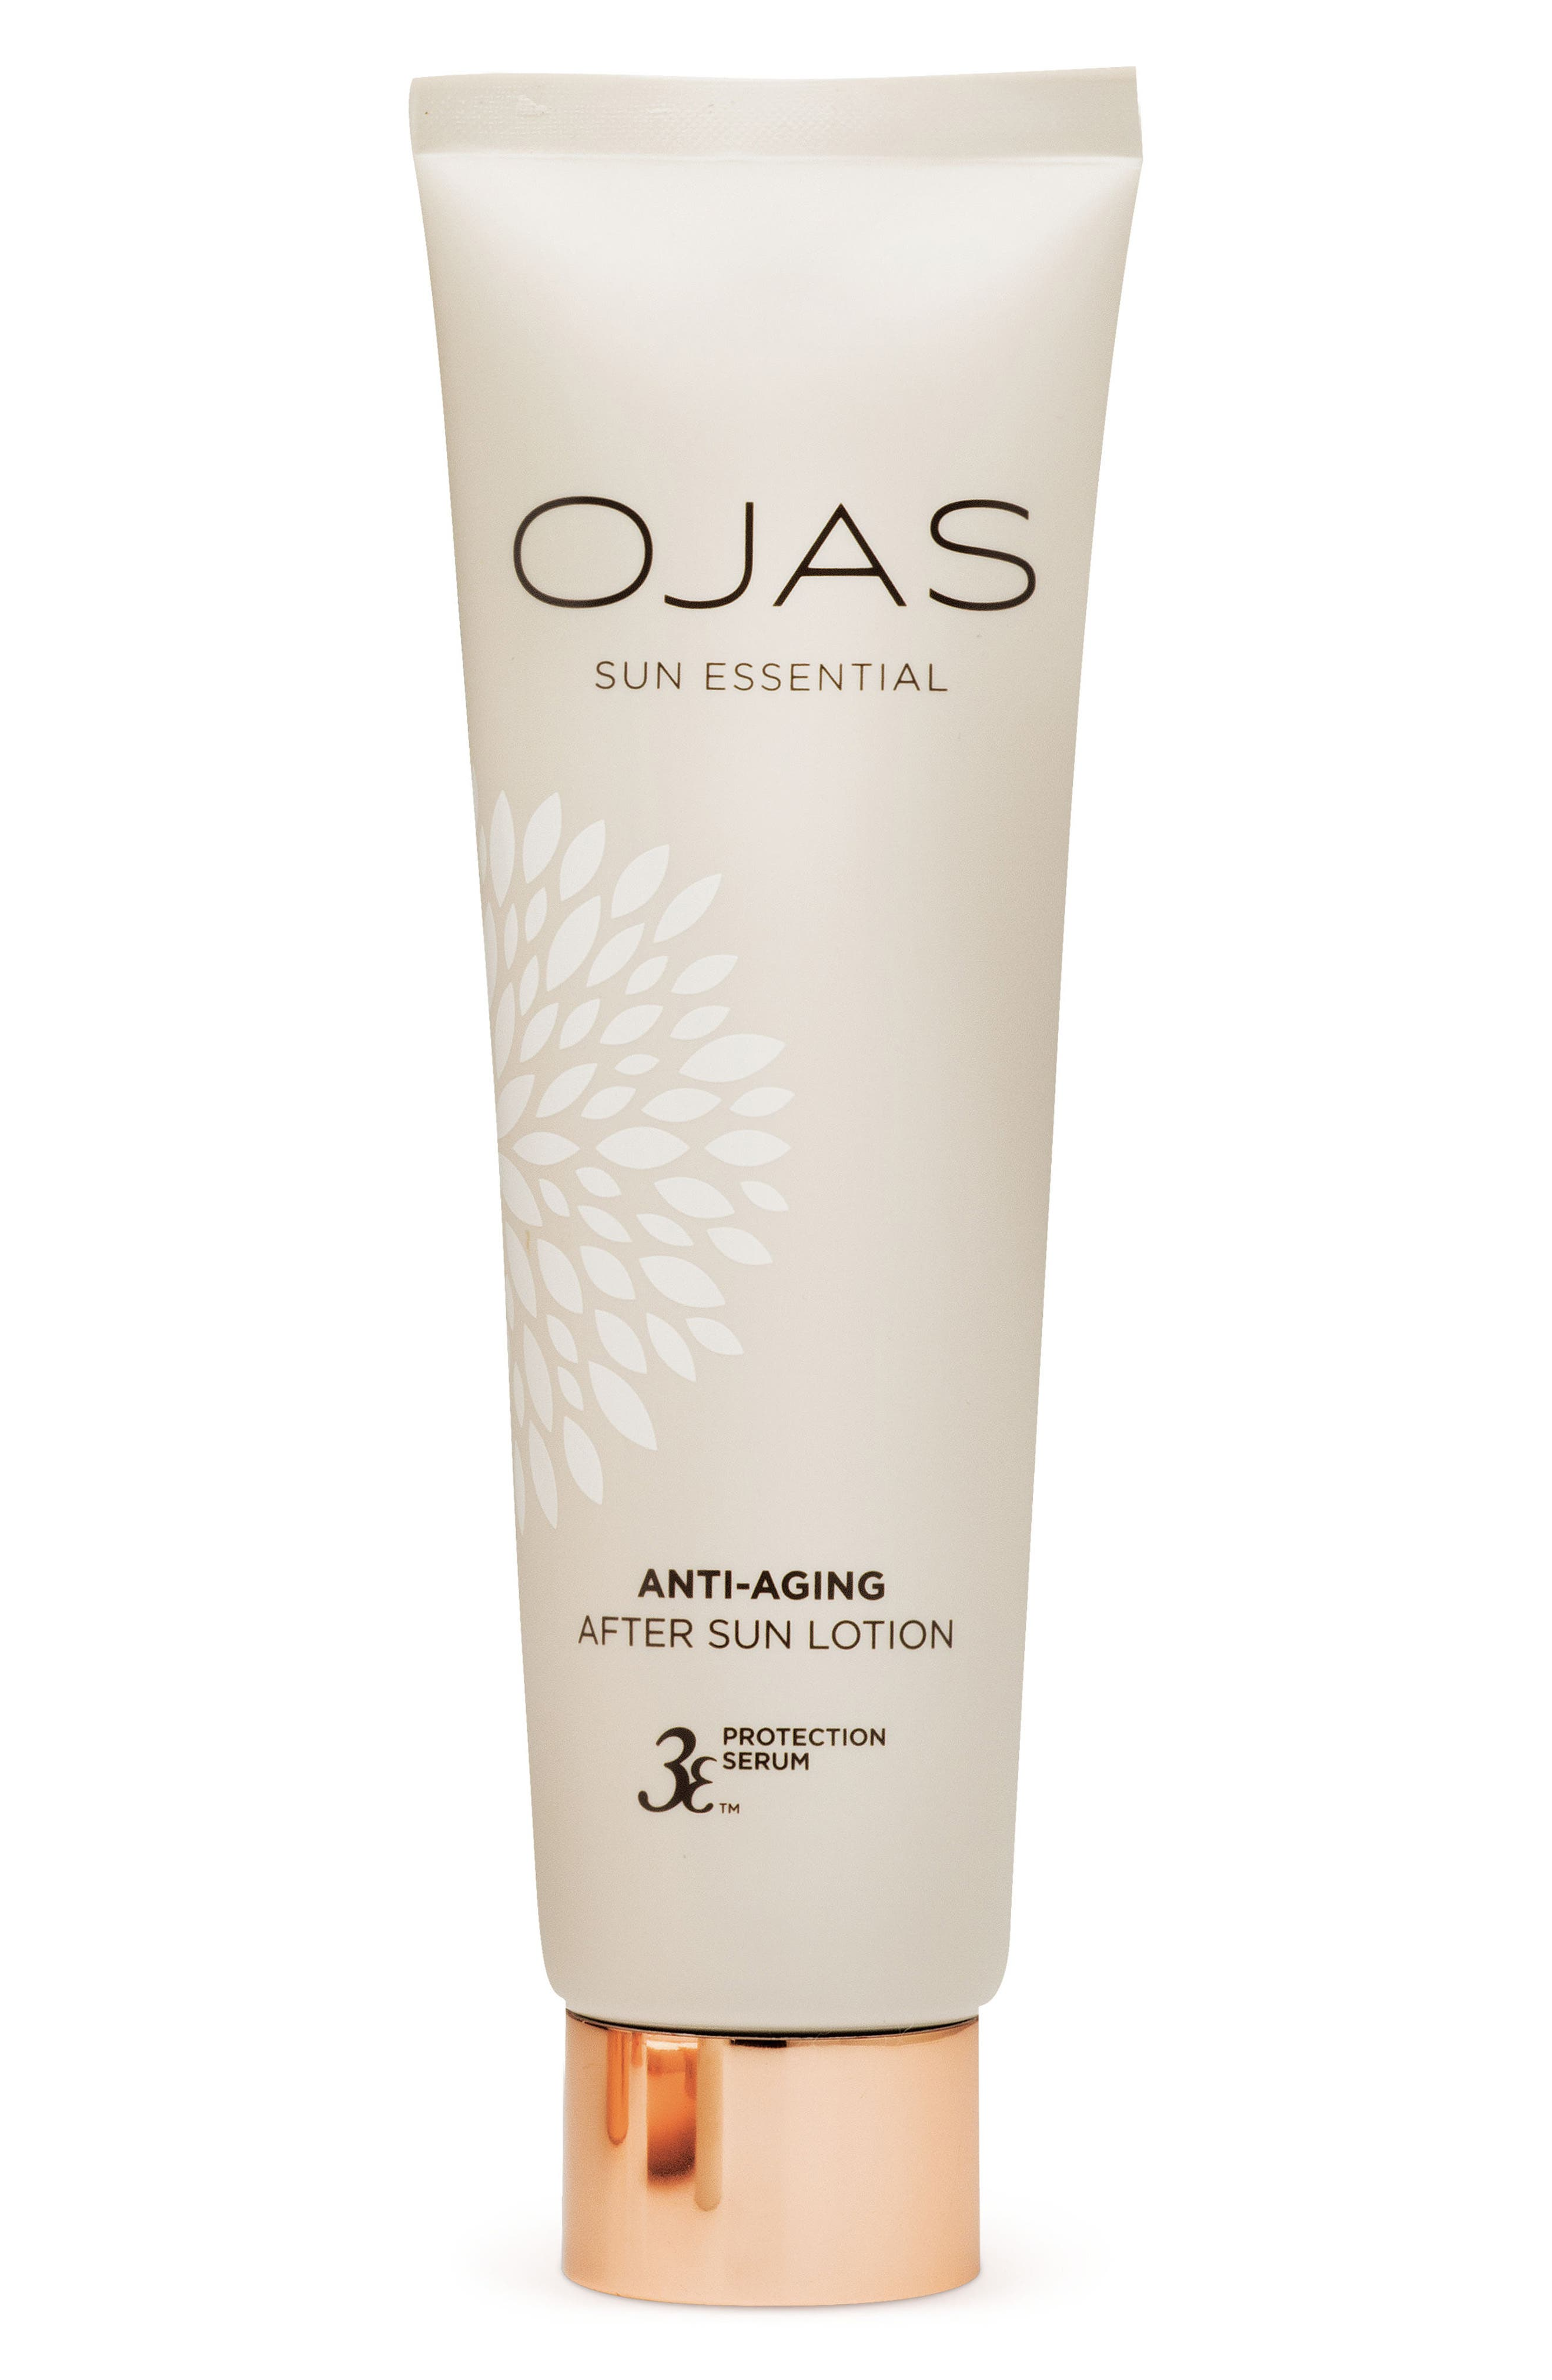 OJAS Anti-Aging After Sun Lotion